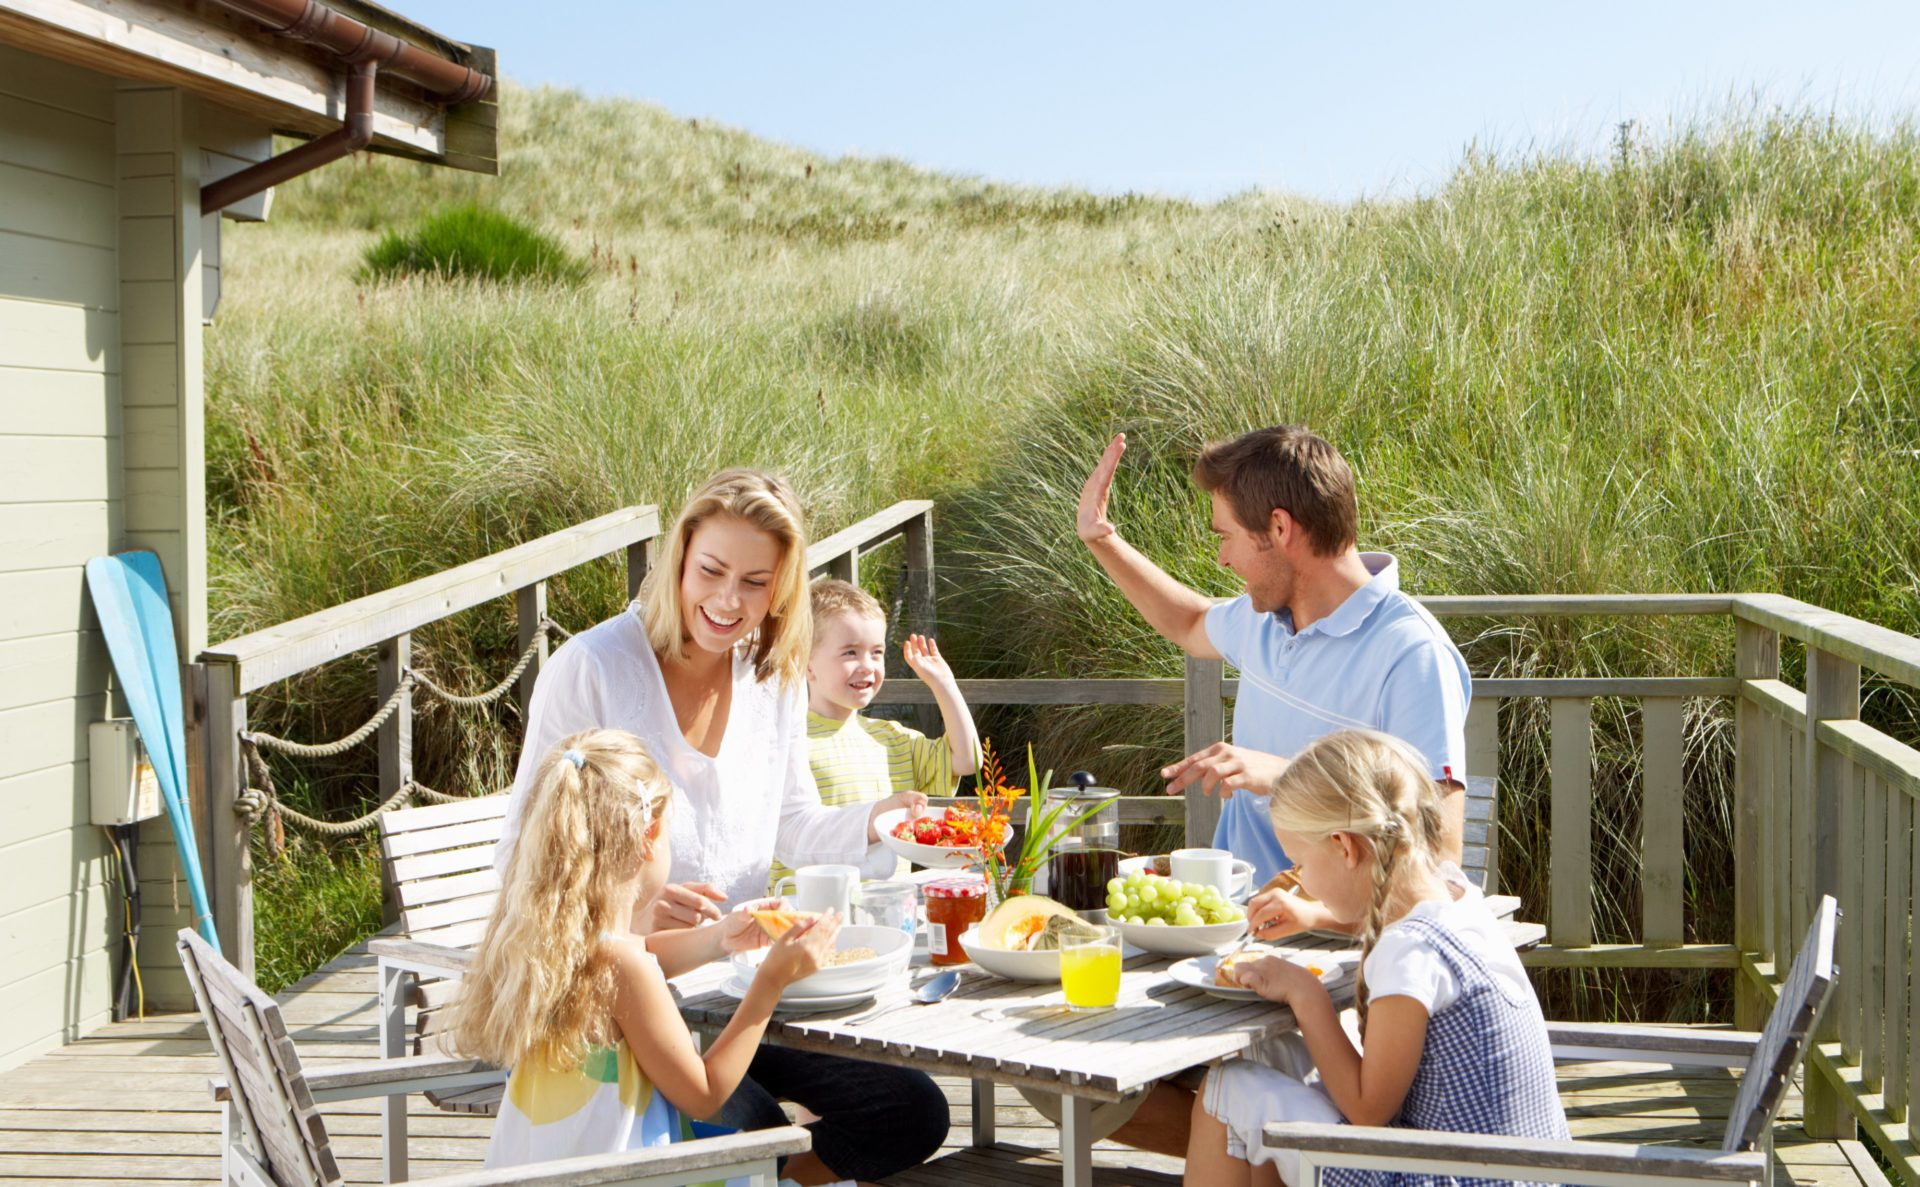 Family eating together on holiday | Buying a holiday home with family